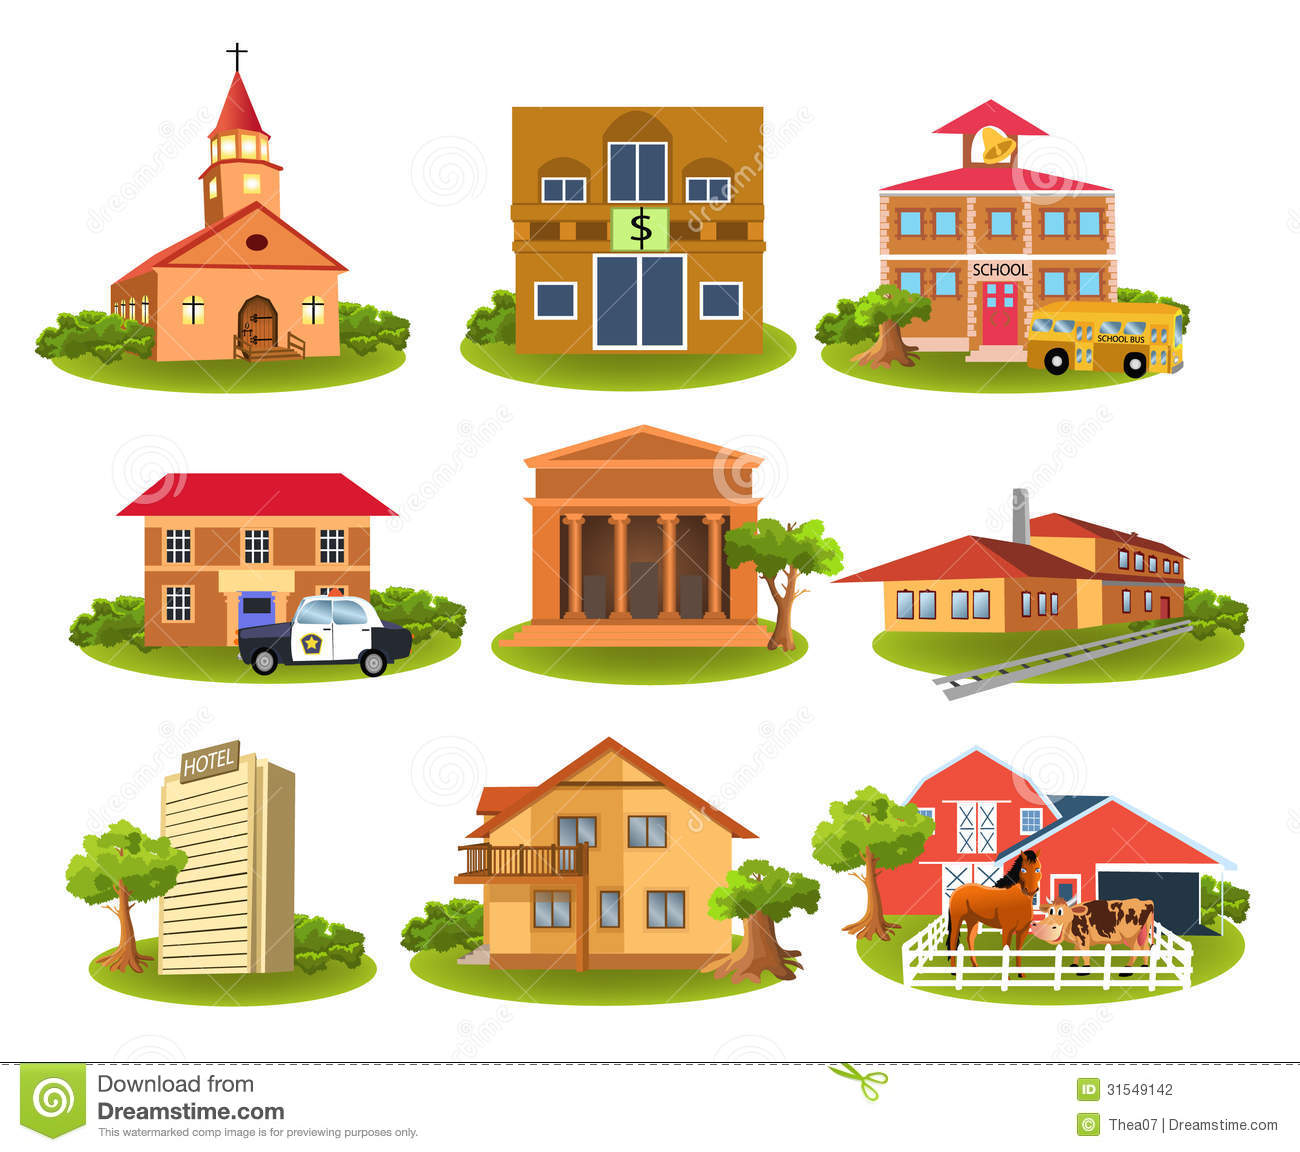 Places clipart - Clipground